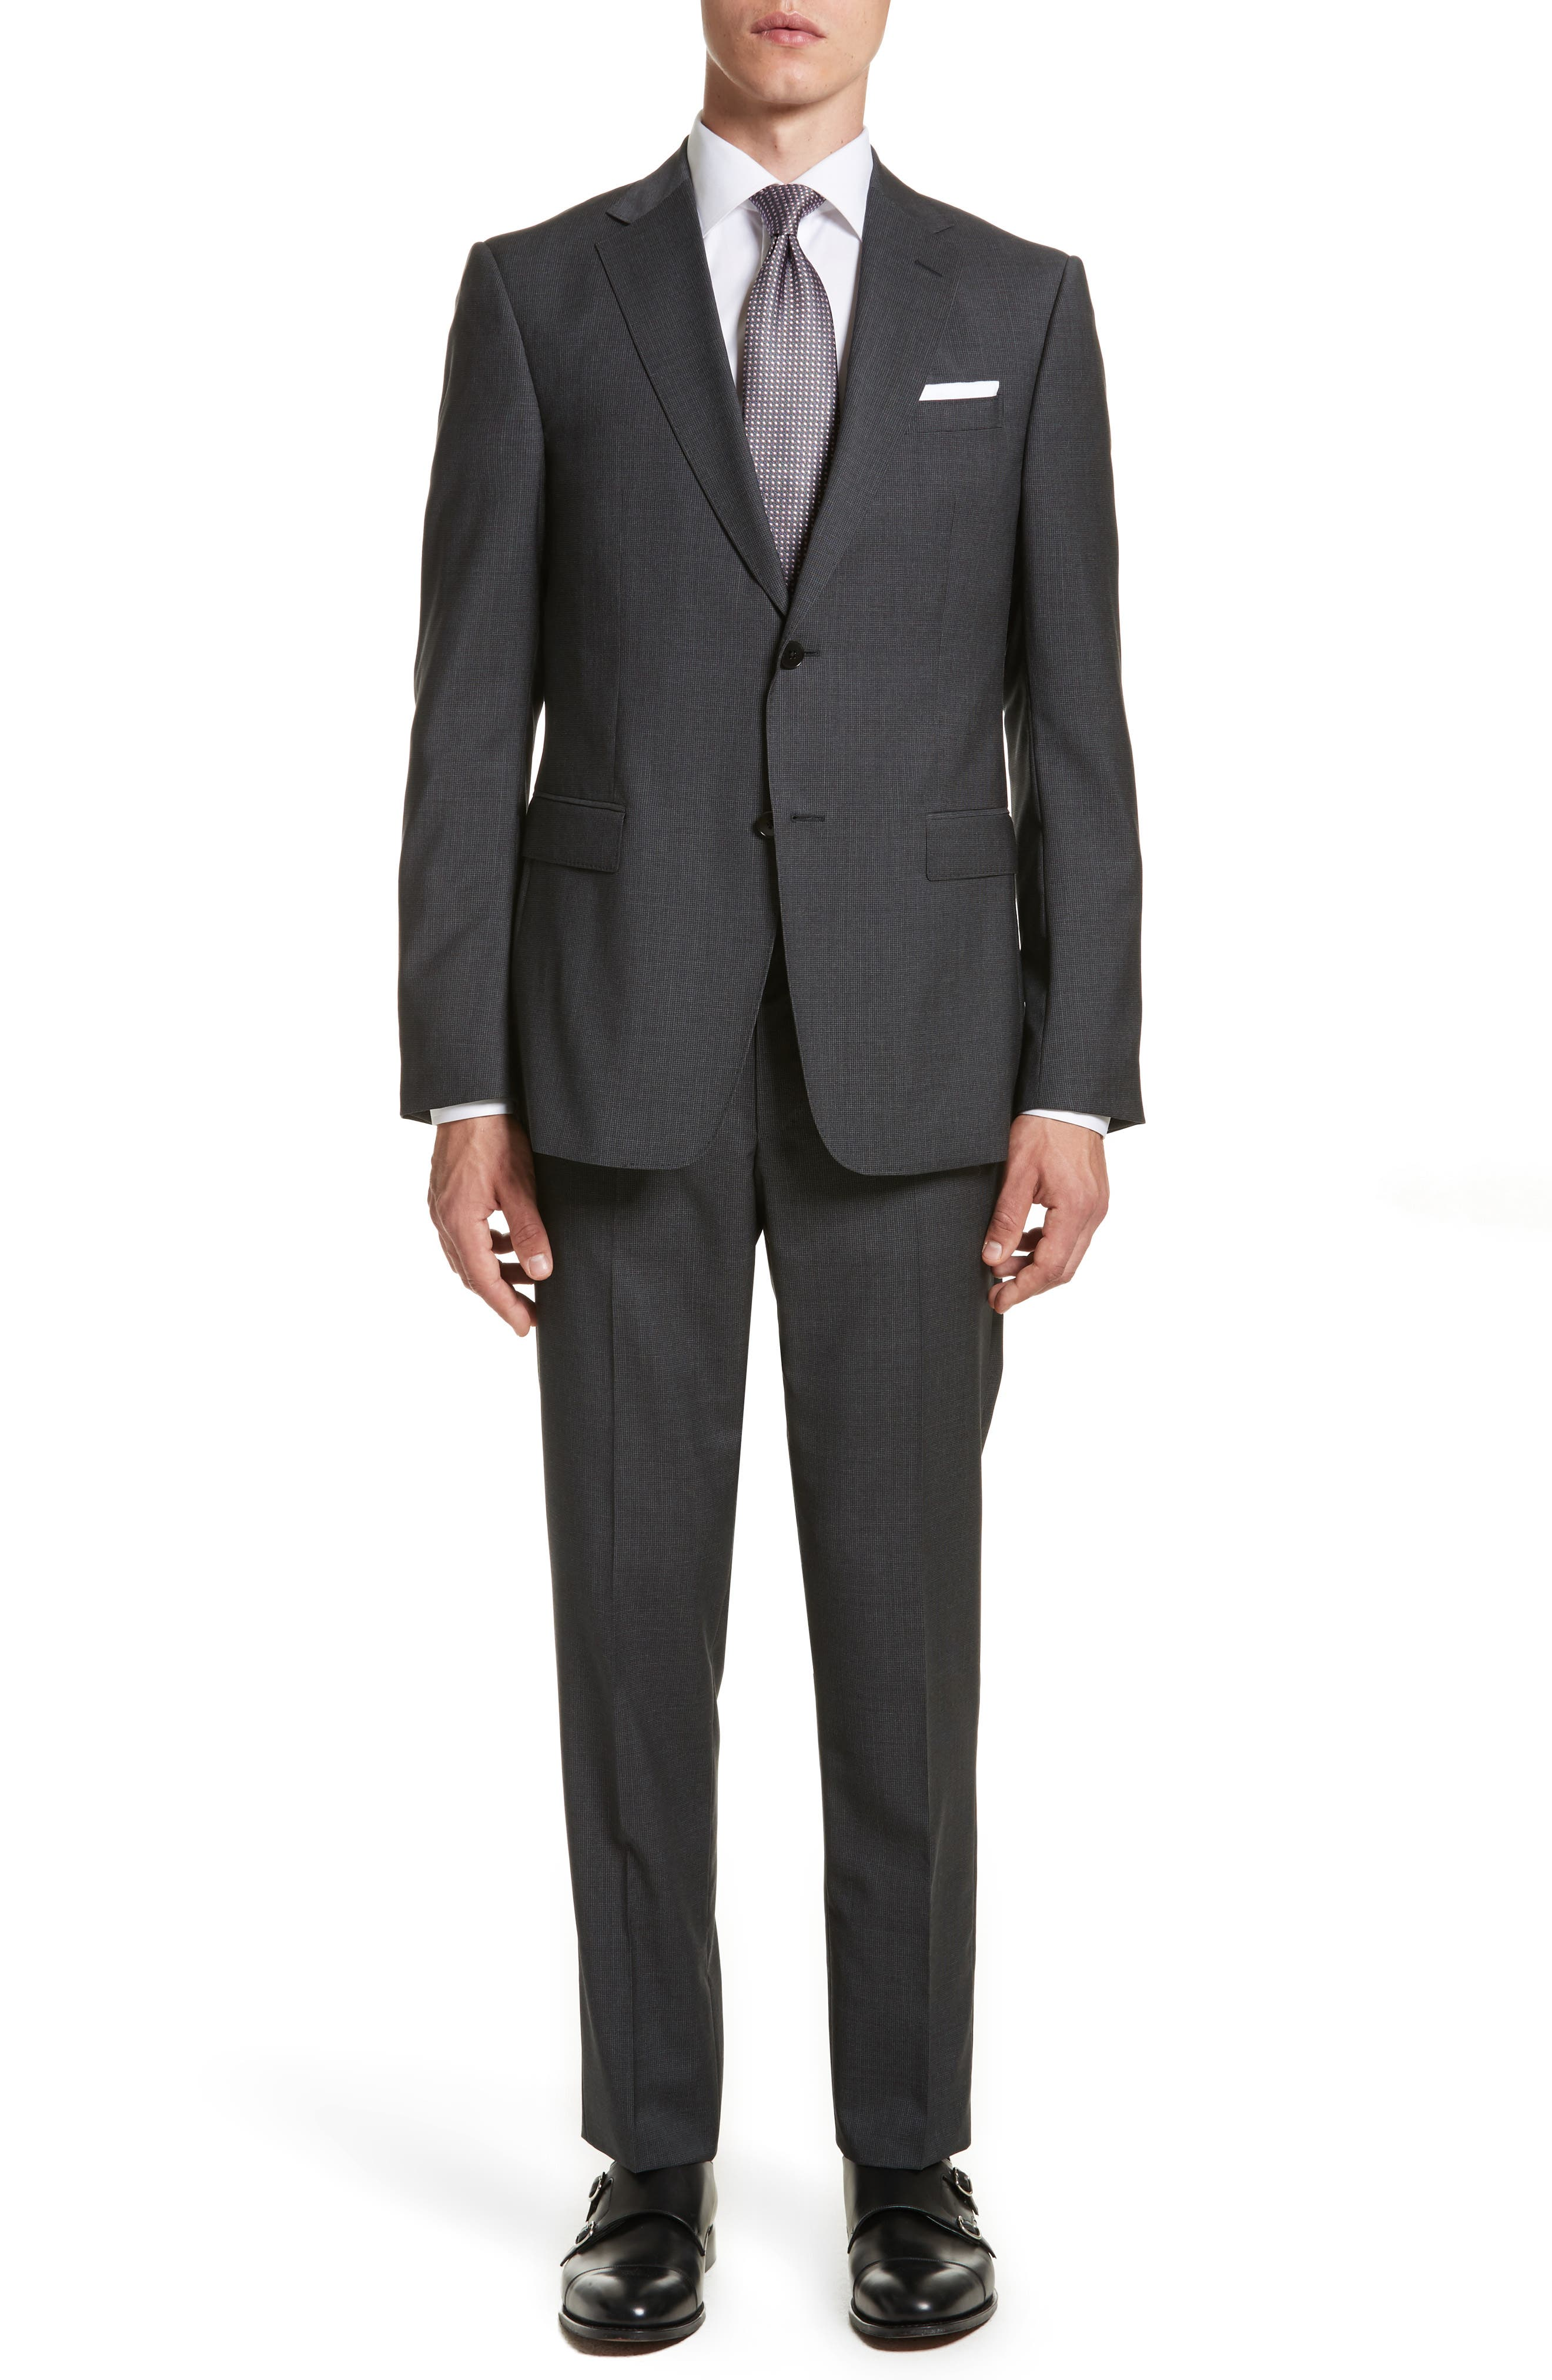 Z Zegna Classic Fit Solid Wool Suit